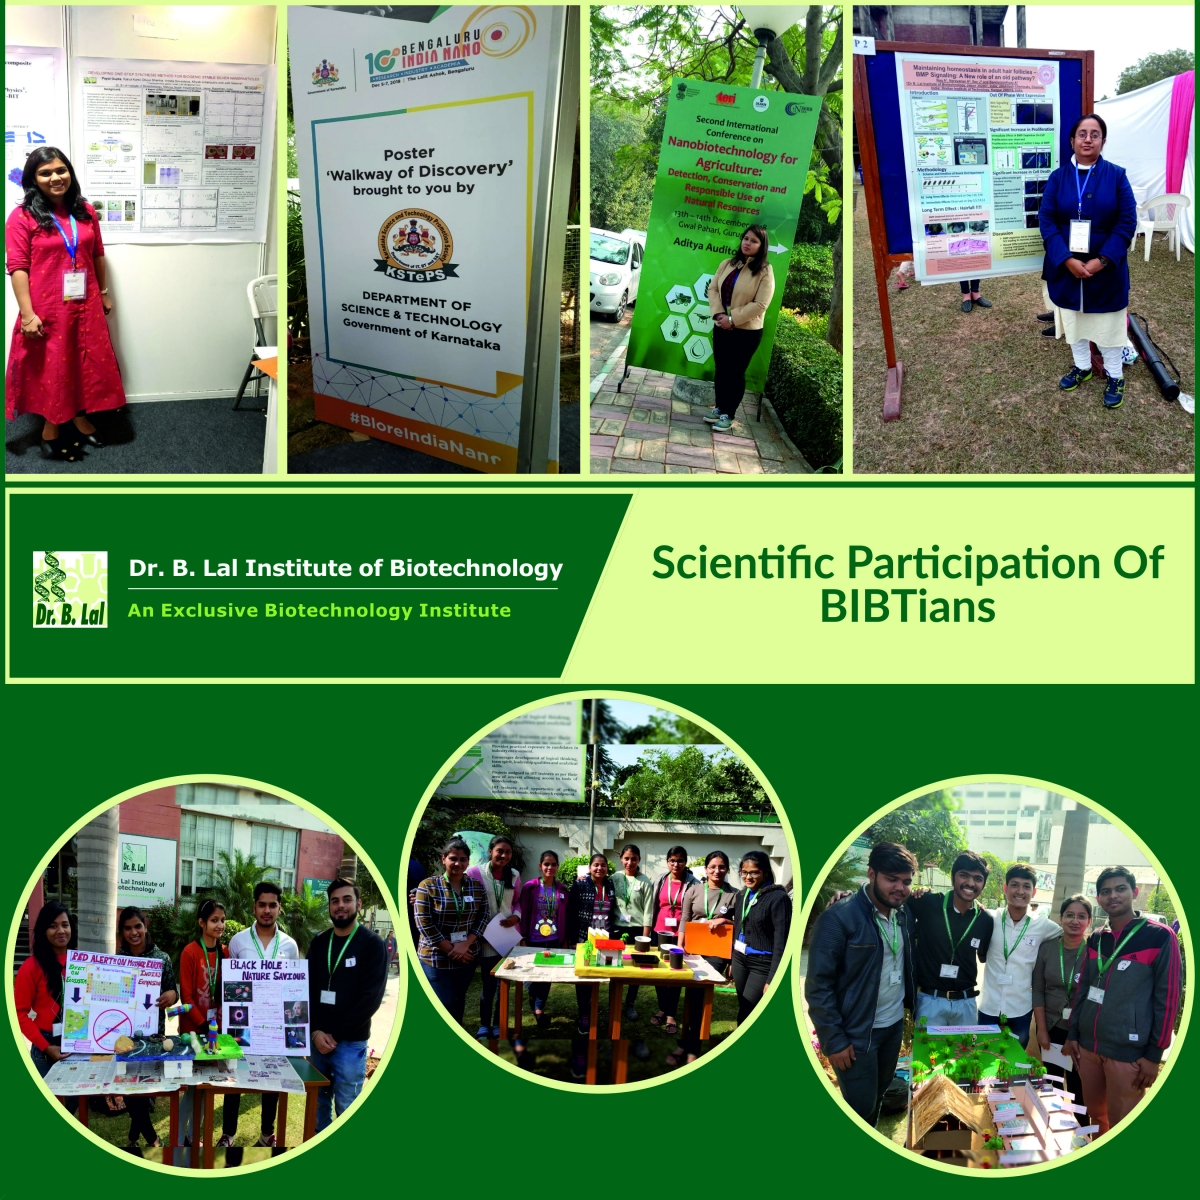 Scientific Participation Of BIBTians